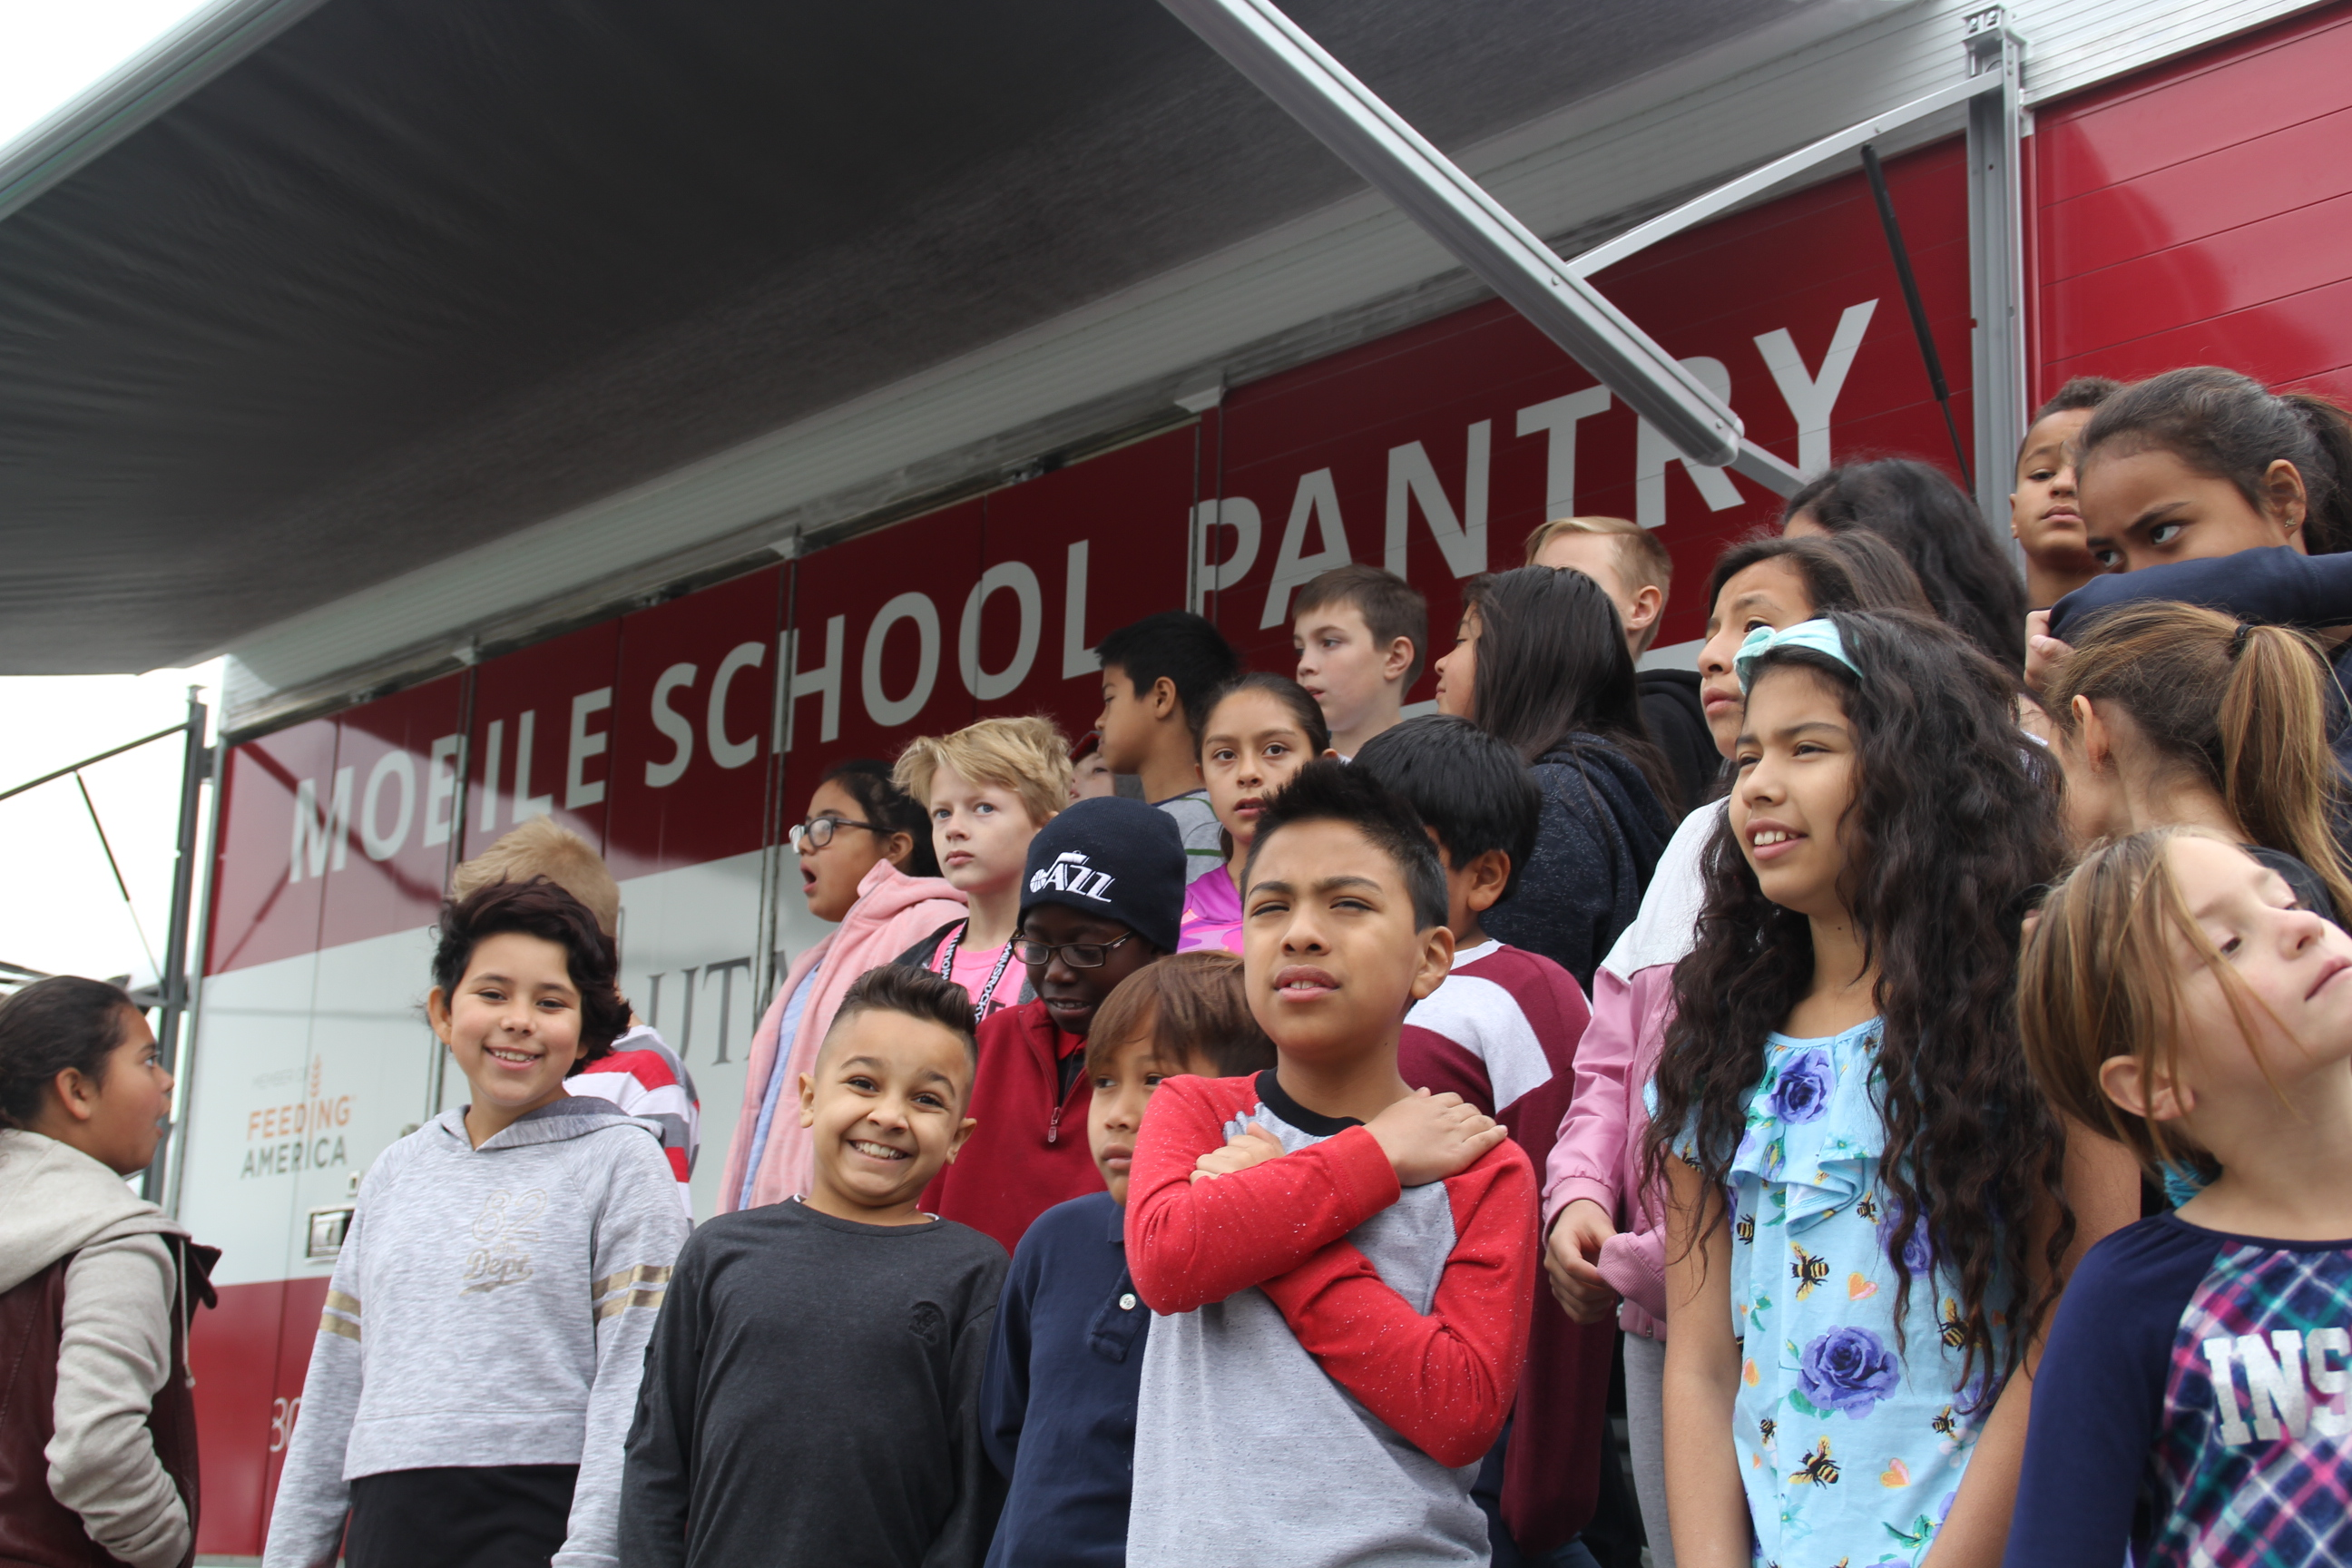 KUER: New Mobile Food Pantry to Stave Off Student Hunger